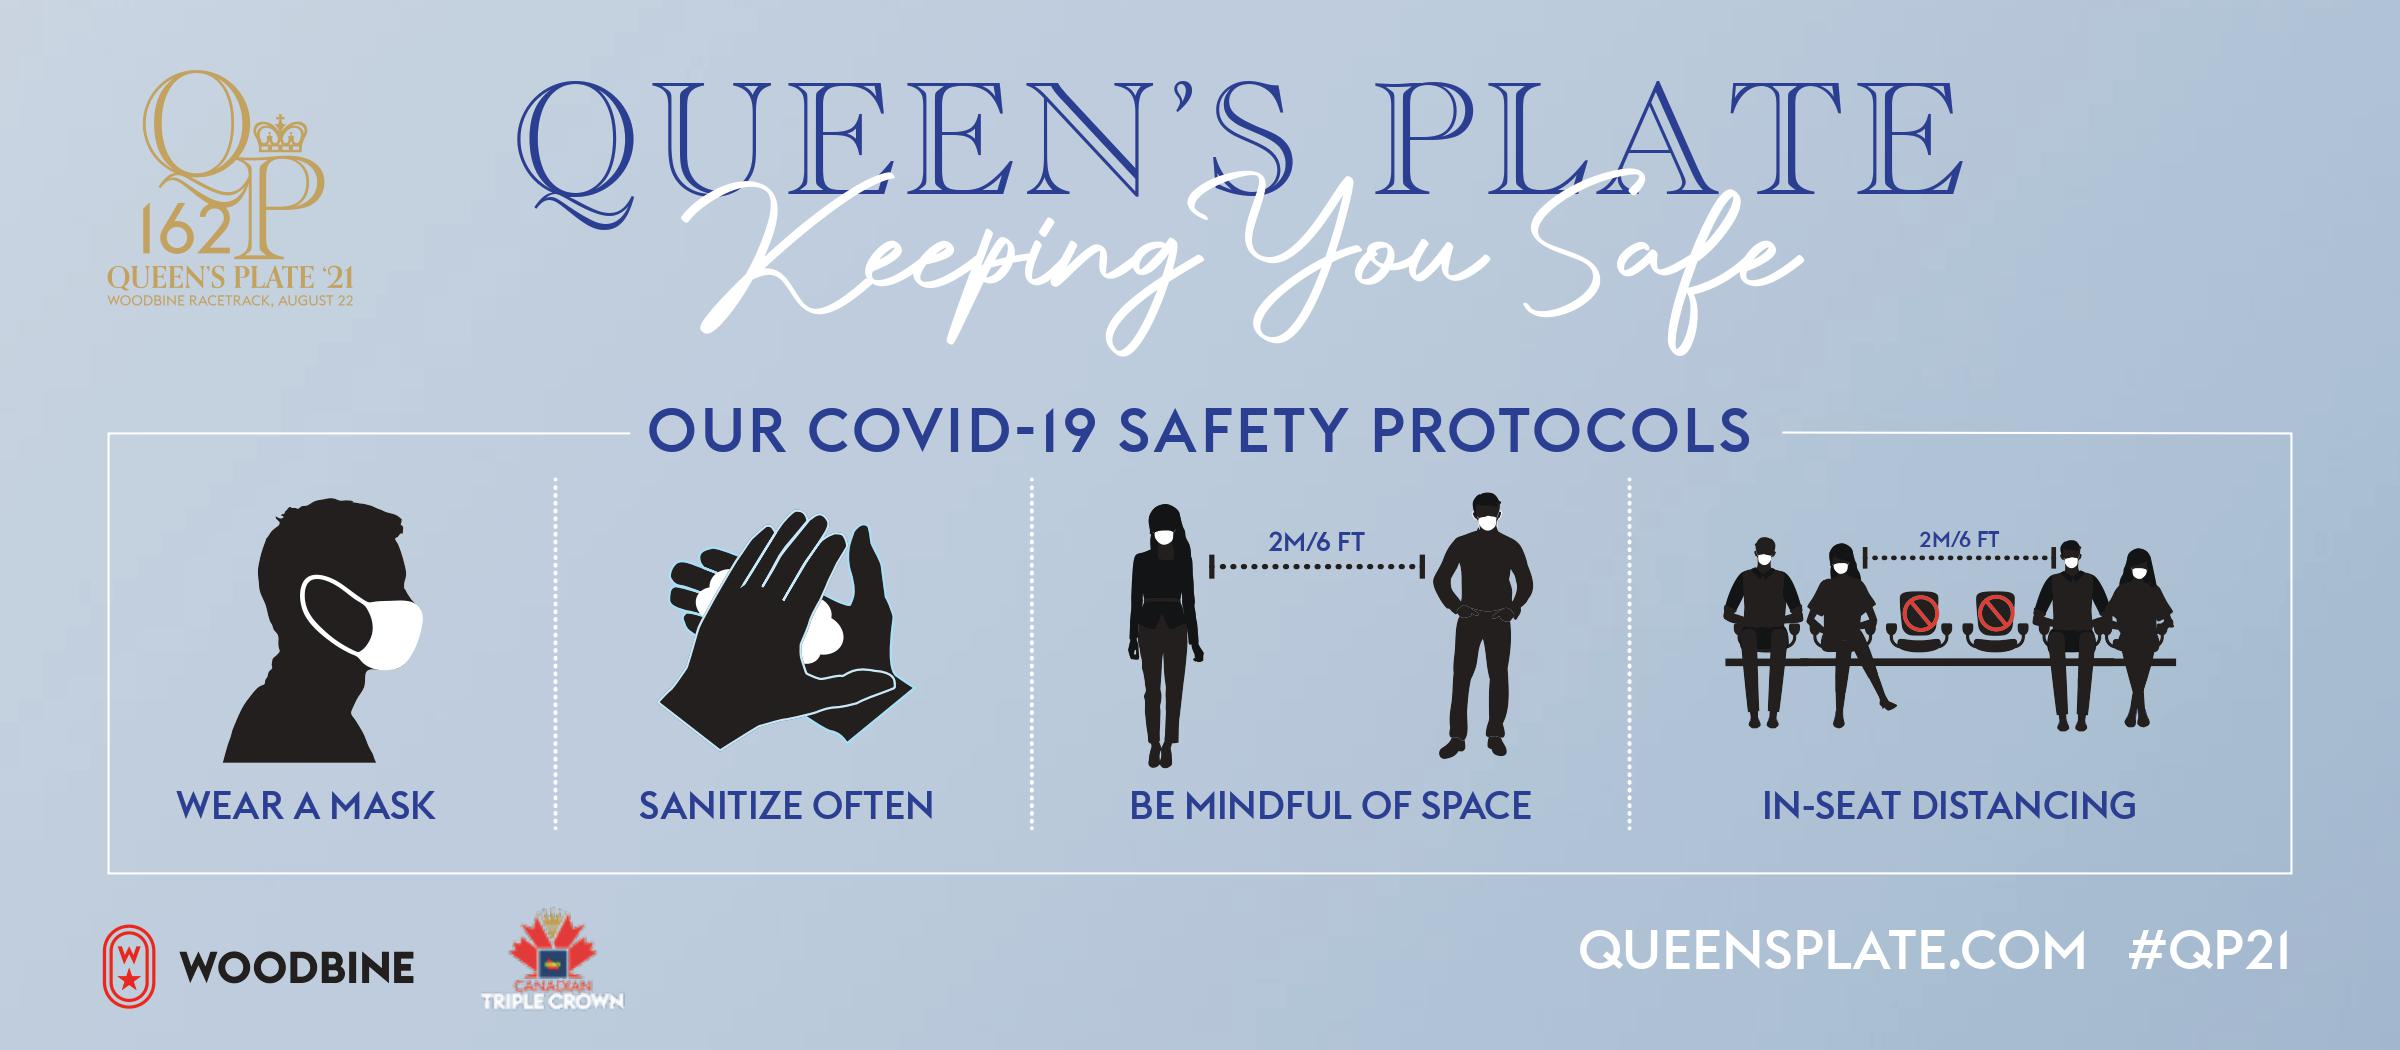 Queen's PLate Keeping you safe. Our COVID-19 safety protocols